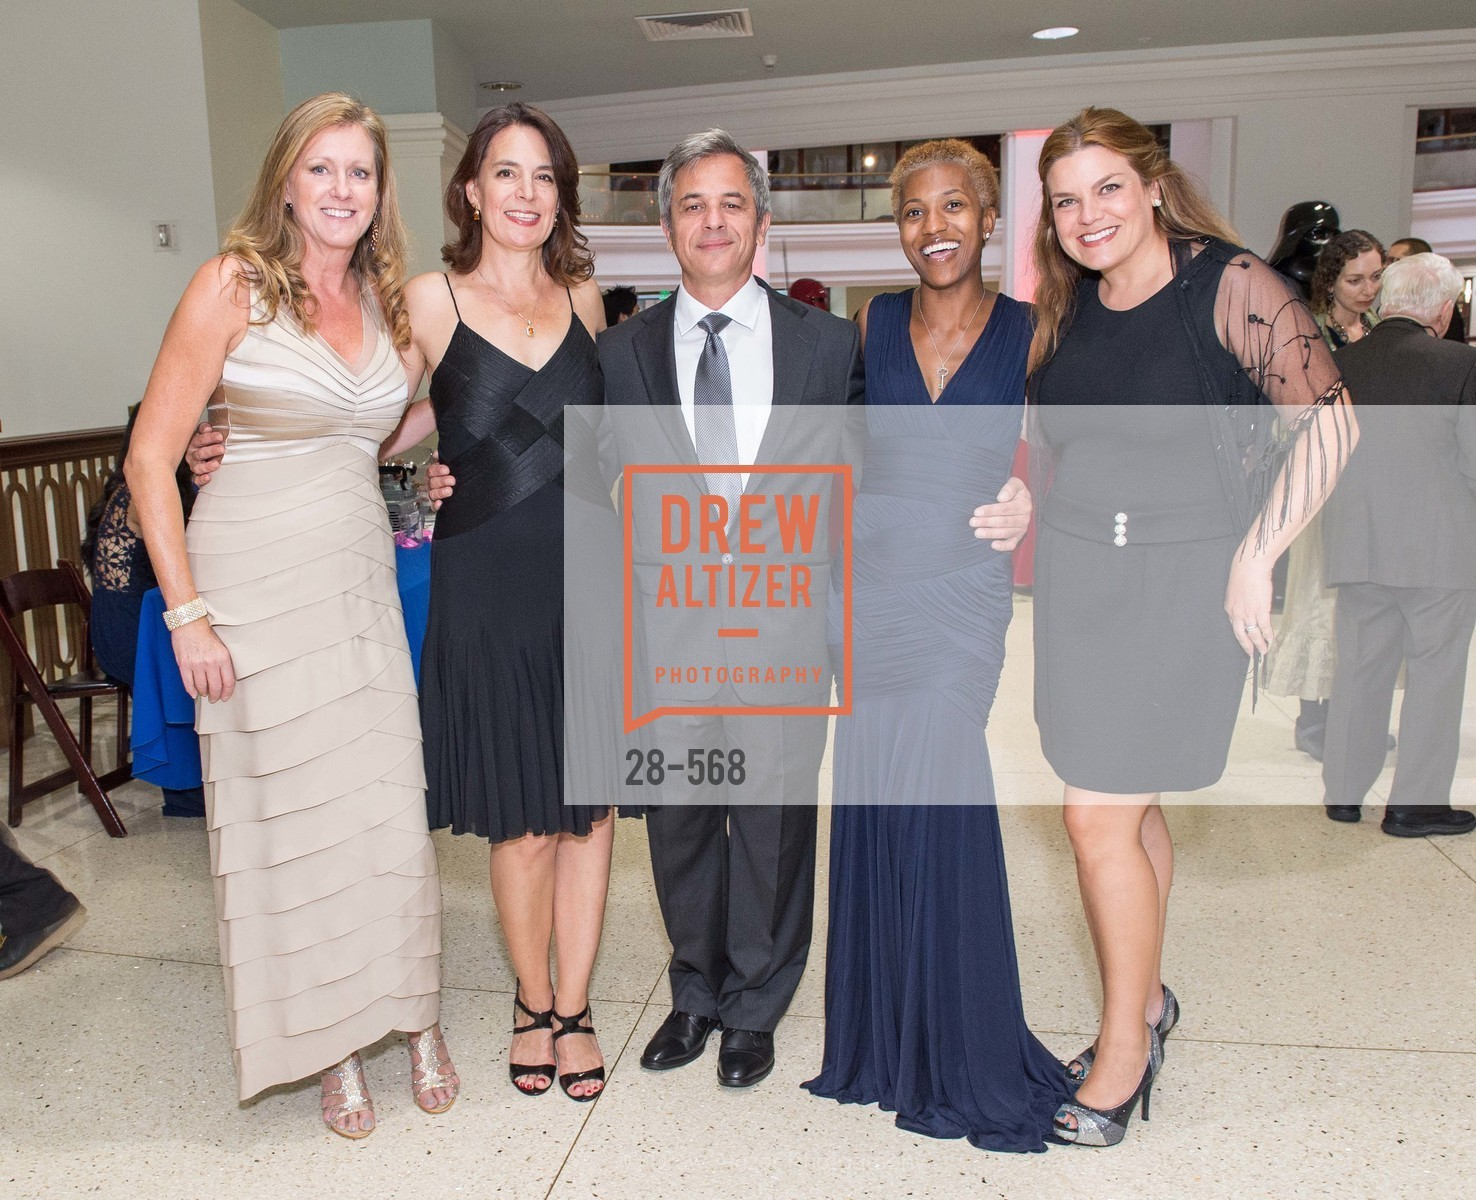 Melissa Russo, Mimi Rohr, Freidrich Neema, Autumn King, Jill Broadhurst, SOTHEBY'S  Hosts a Private Viewing of Highlights from the Collection of MRS. PAUL MELLON, US, September 17th, 2014,Drew Altizer, Drew Altizer Photography, full-service agency, private events, San Francisco photographer, photographer california